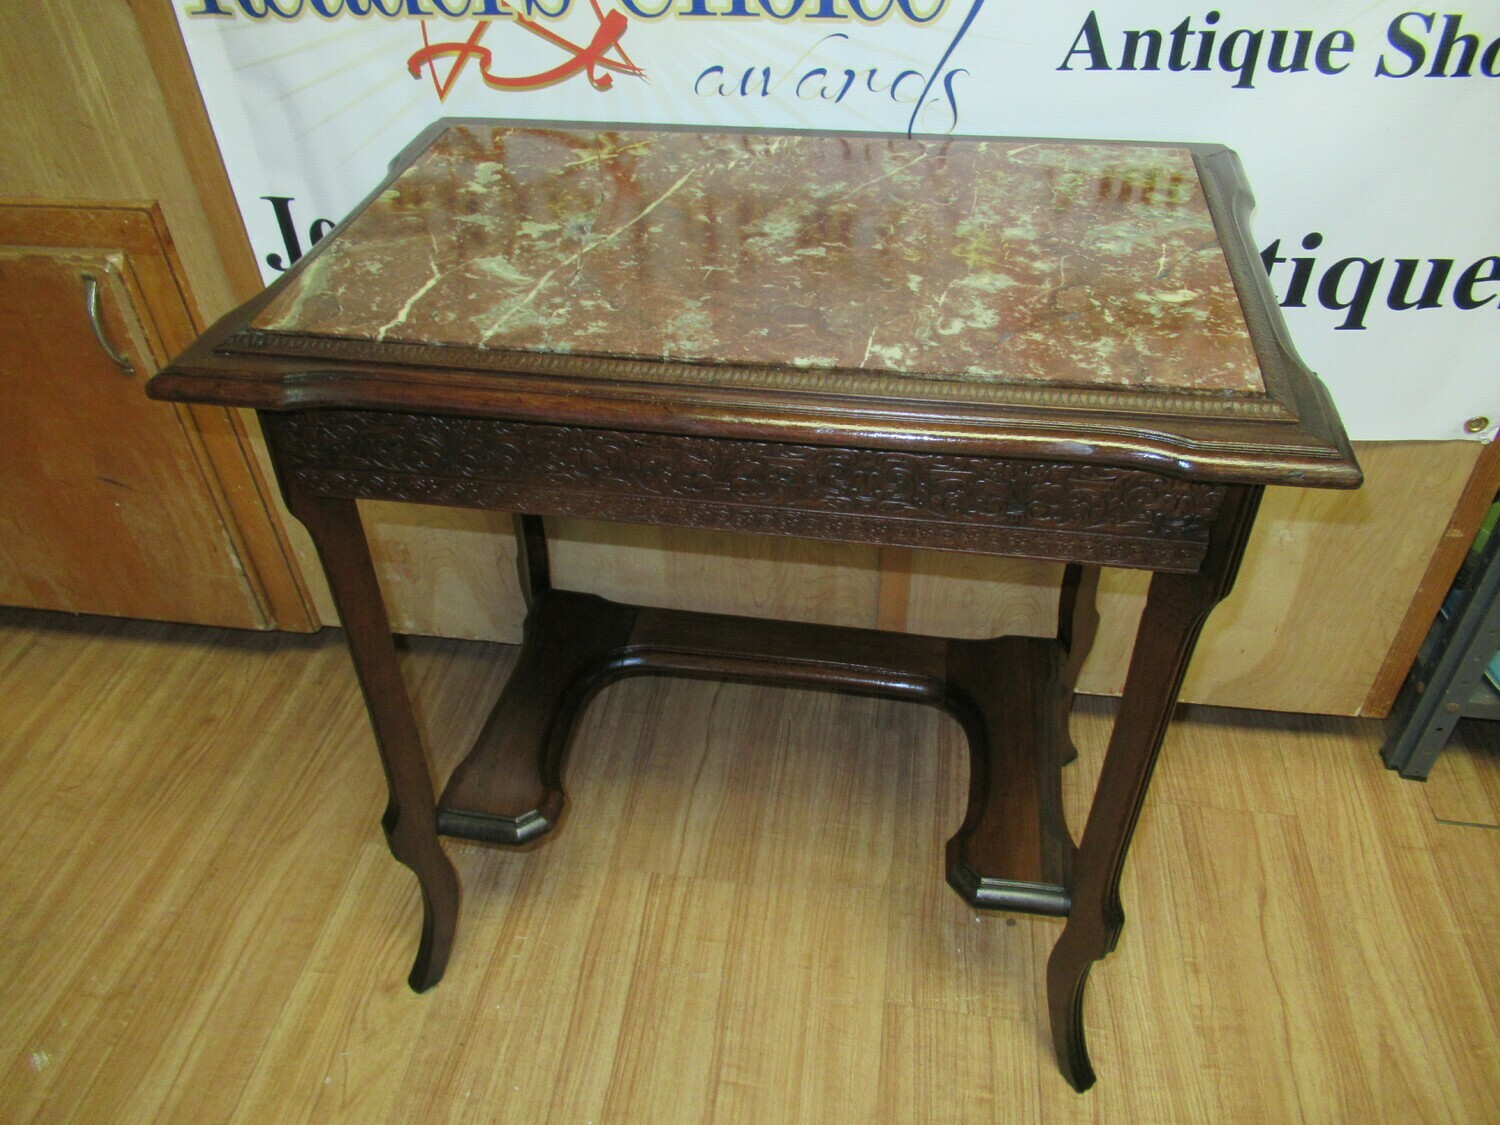 Marble Top Table with Drawer